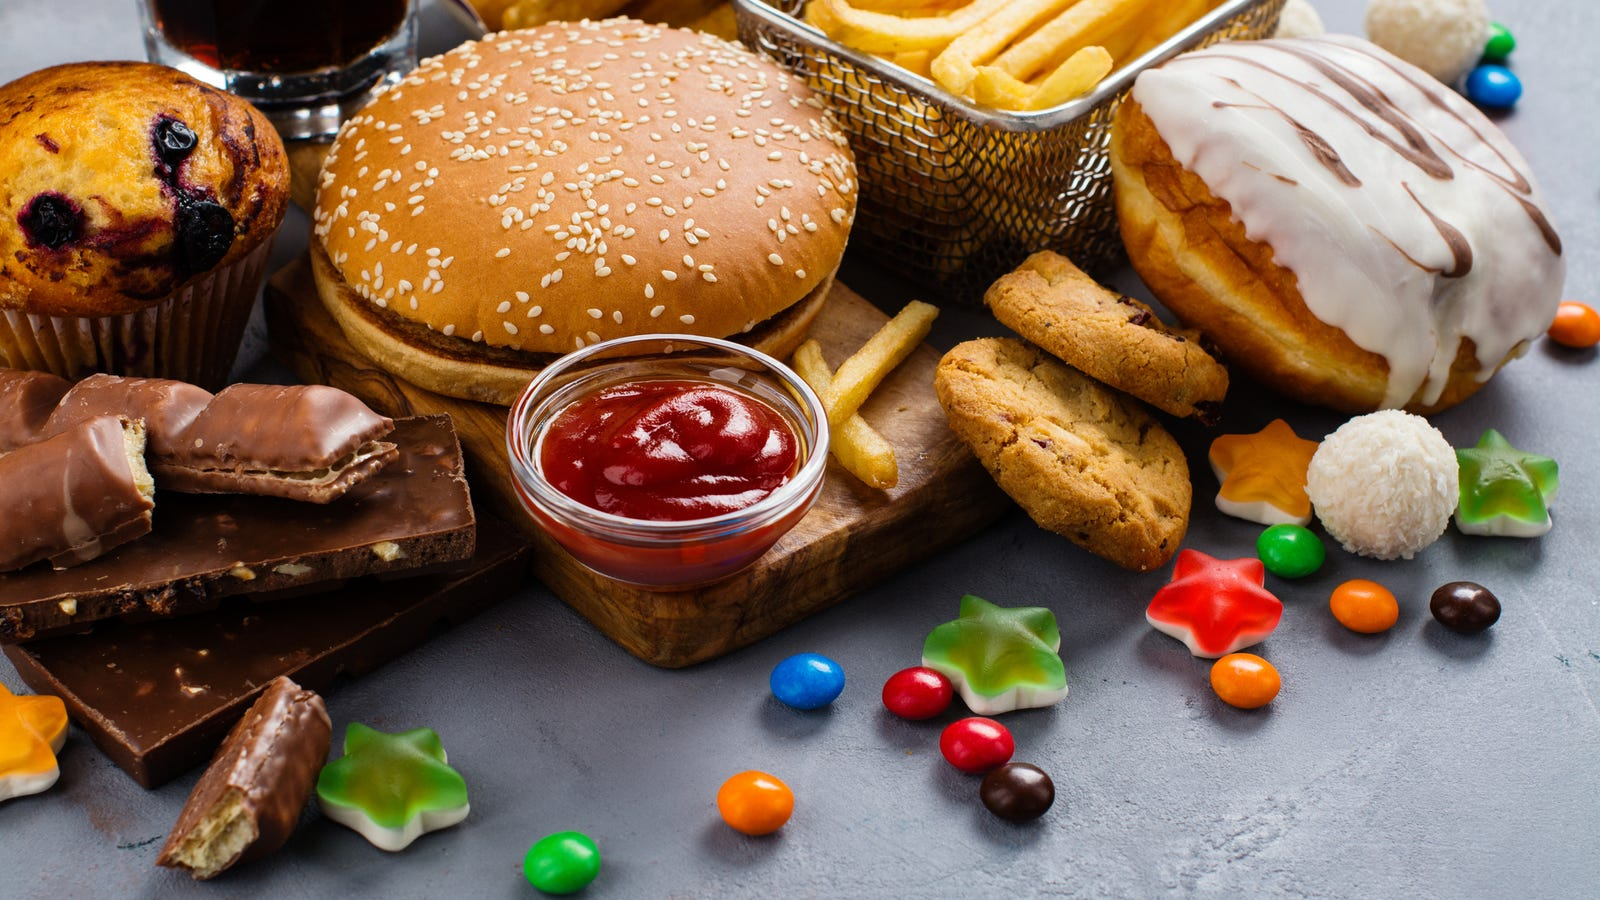 Ultra-processed foods, even in small amounts, linked to risk of early death